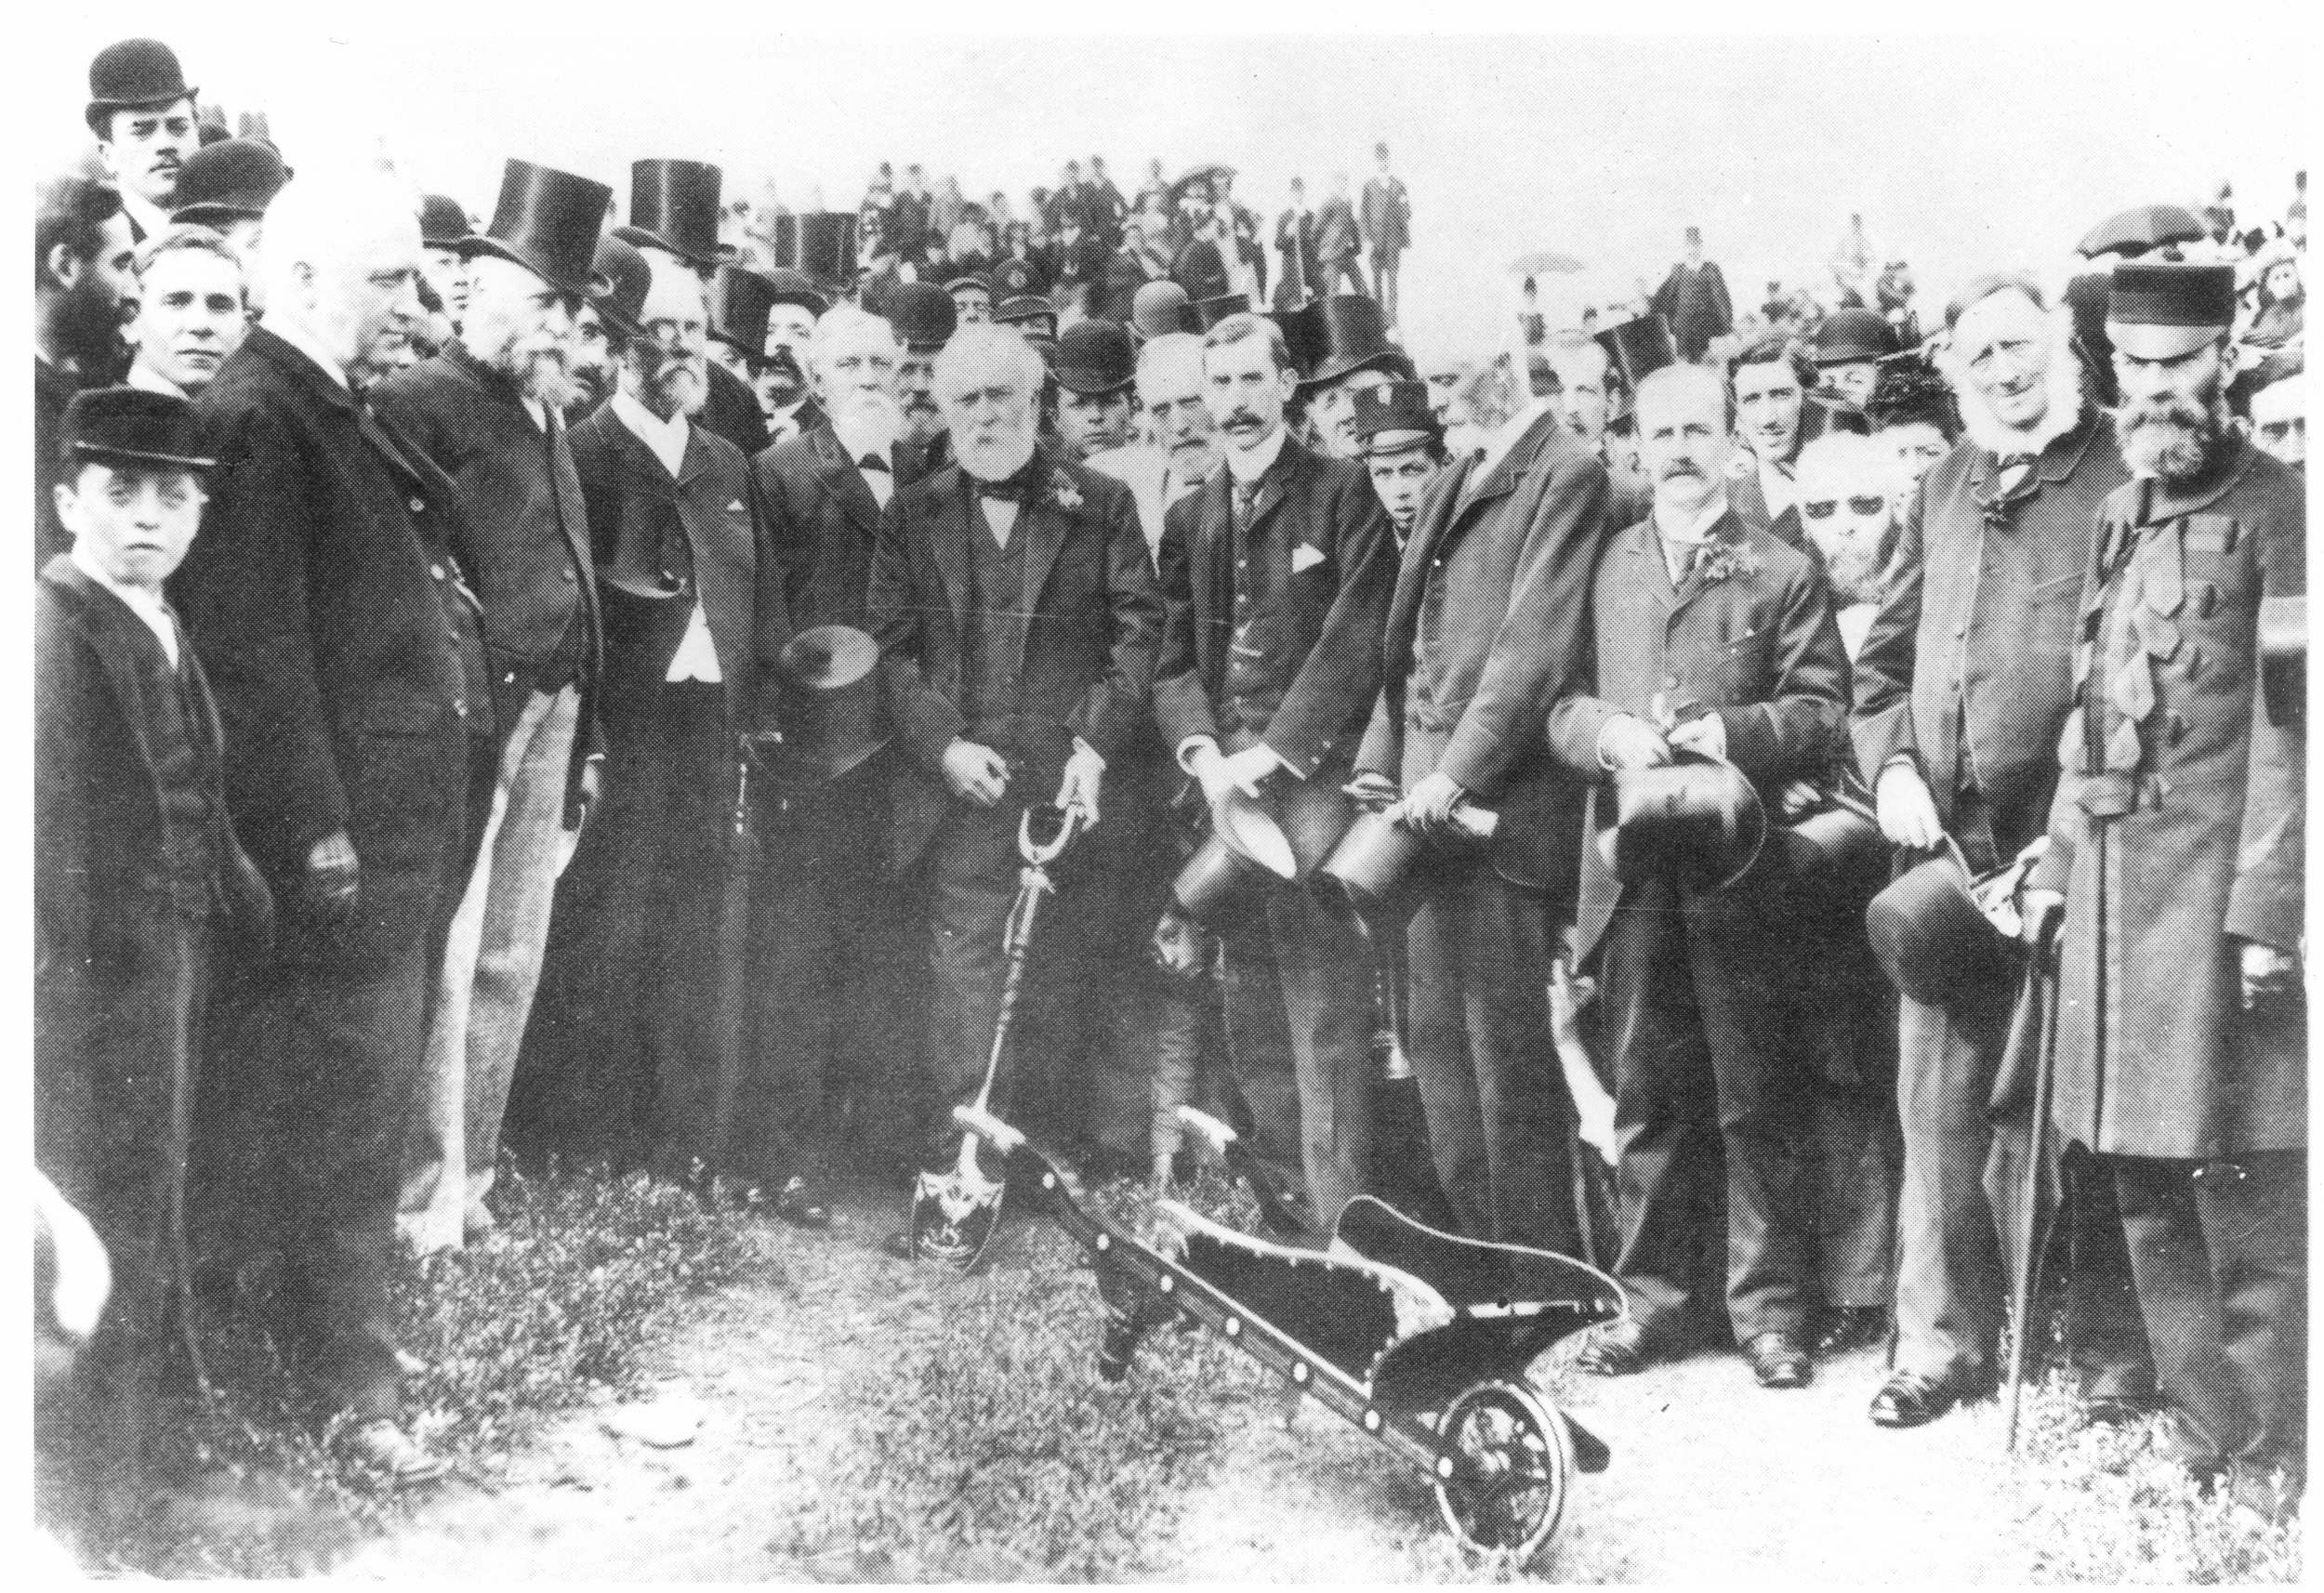 W.J.Porritt cuts first sod for drainage scheme - St Anne's 18th August 1892